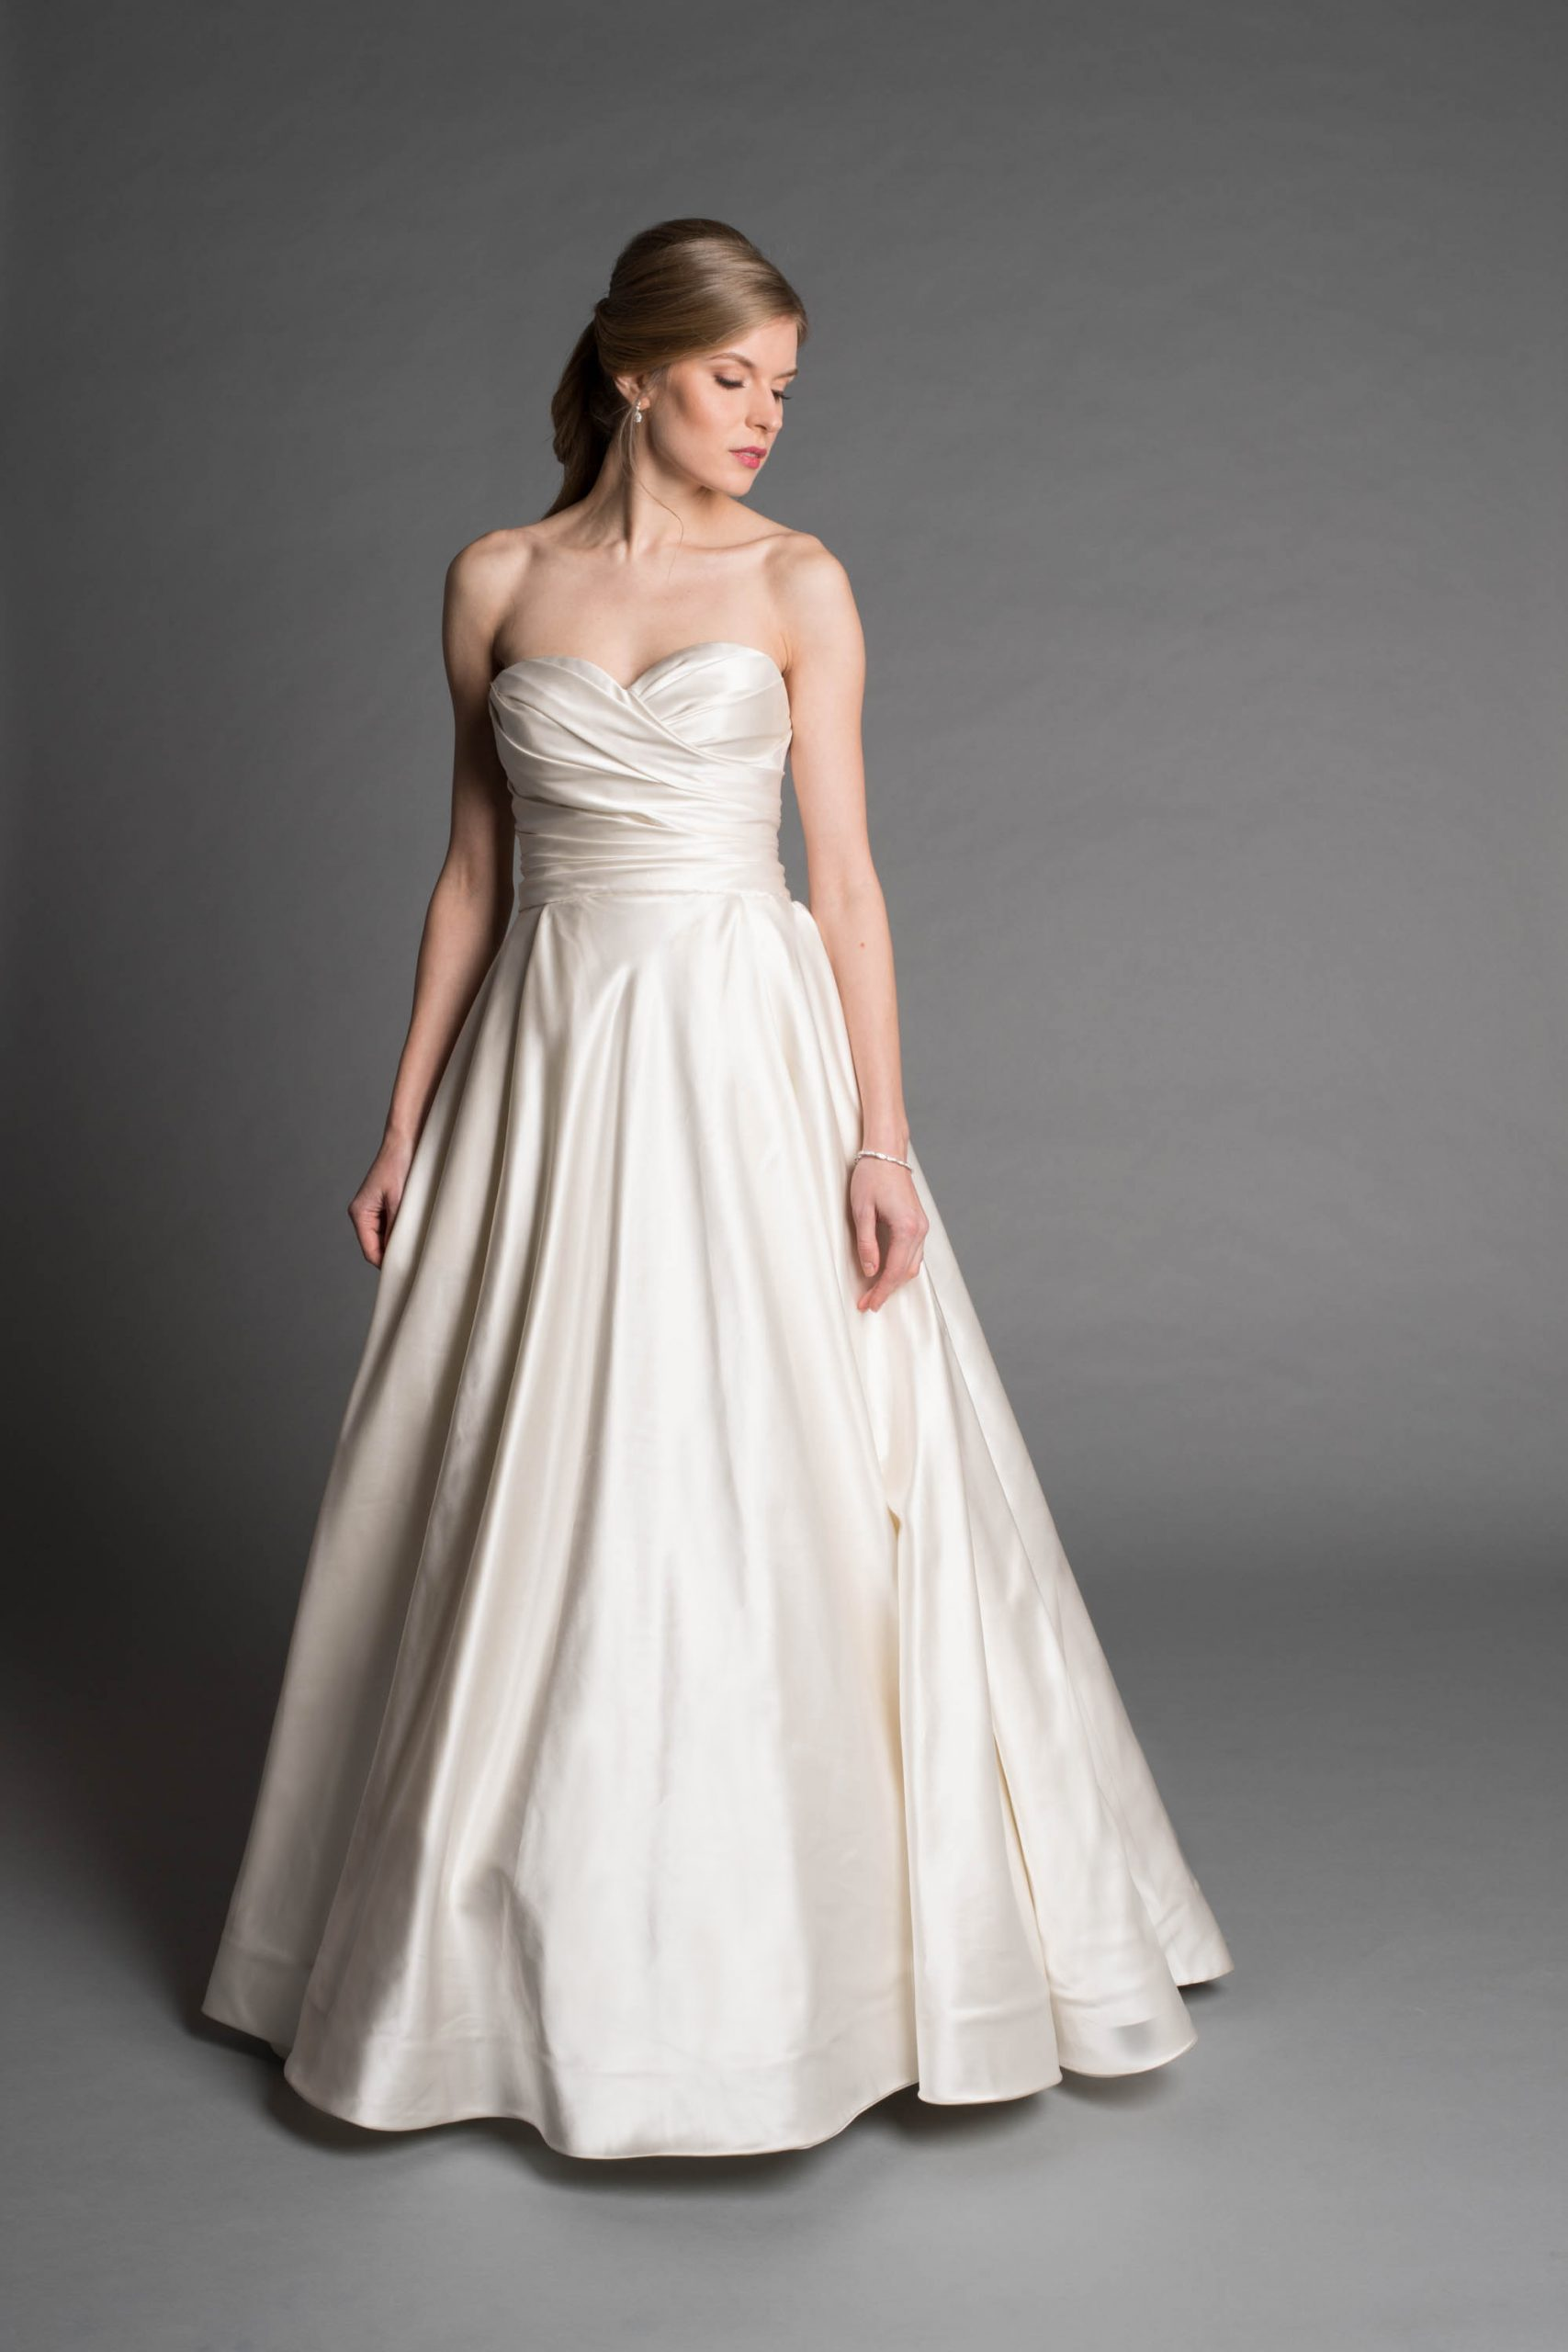 simple ball gown,simple gown,wedding dress simple ball gown,elegant simple evening gown,sweetheart simple ball gown wedding dress,wedding dress simple,wedding dresses simple,simple wedding dress,simple dresses,elegant wedding dress,wedding dresses simple,